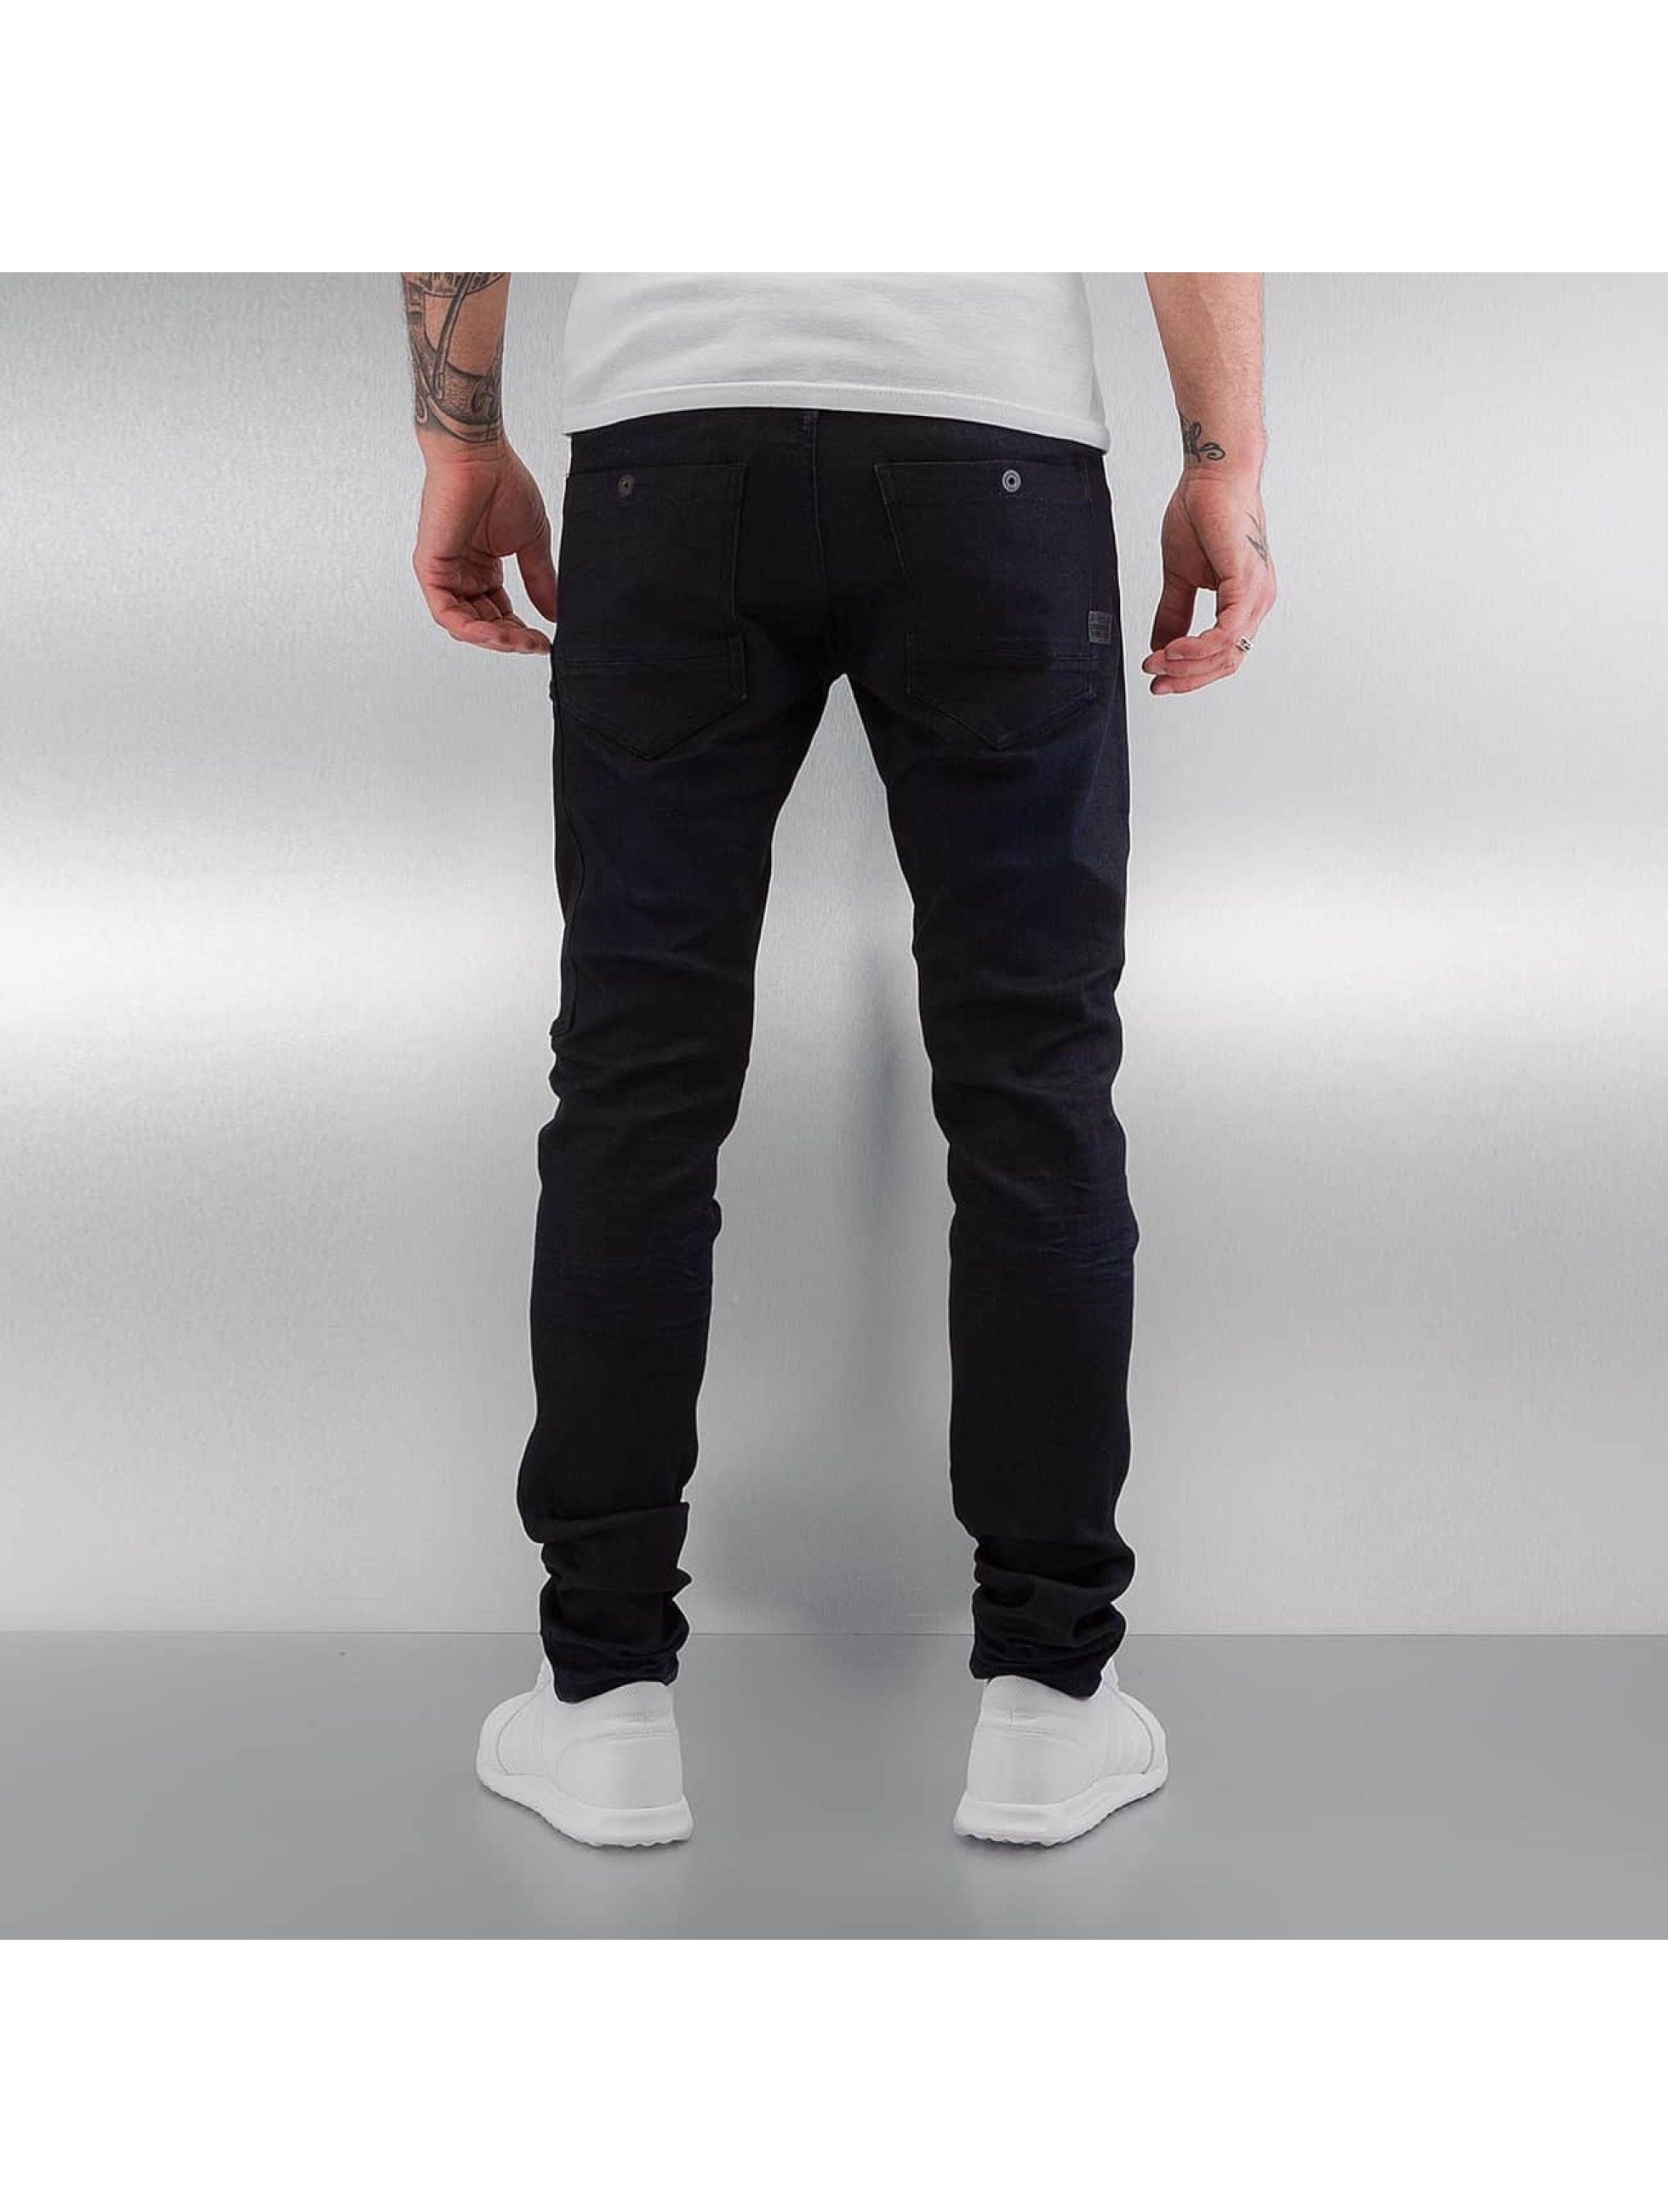 G-Star Slim Fit Jeans Powel Super Slim Visor schwarz